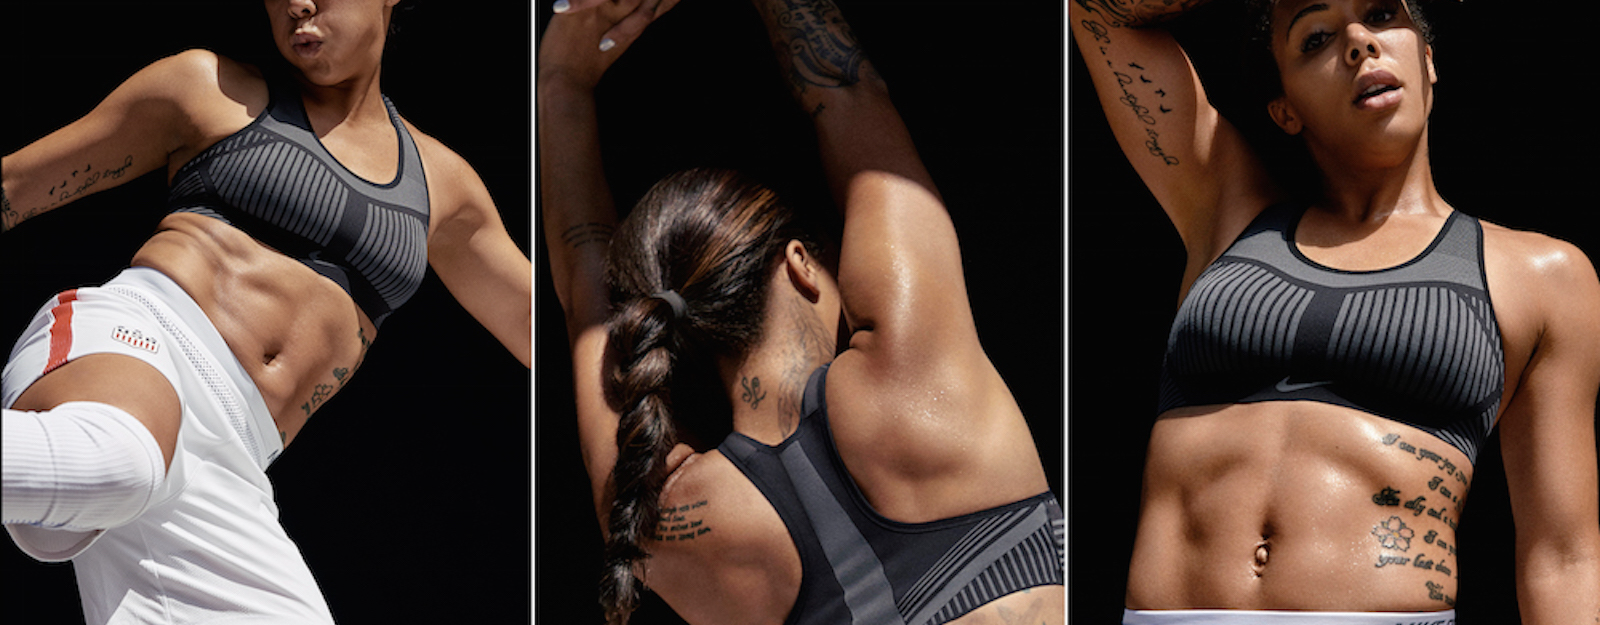 7a19c9c660719 Nike Brings Flyknit Technology to Clothing with the FE/NOM Flyknit ...